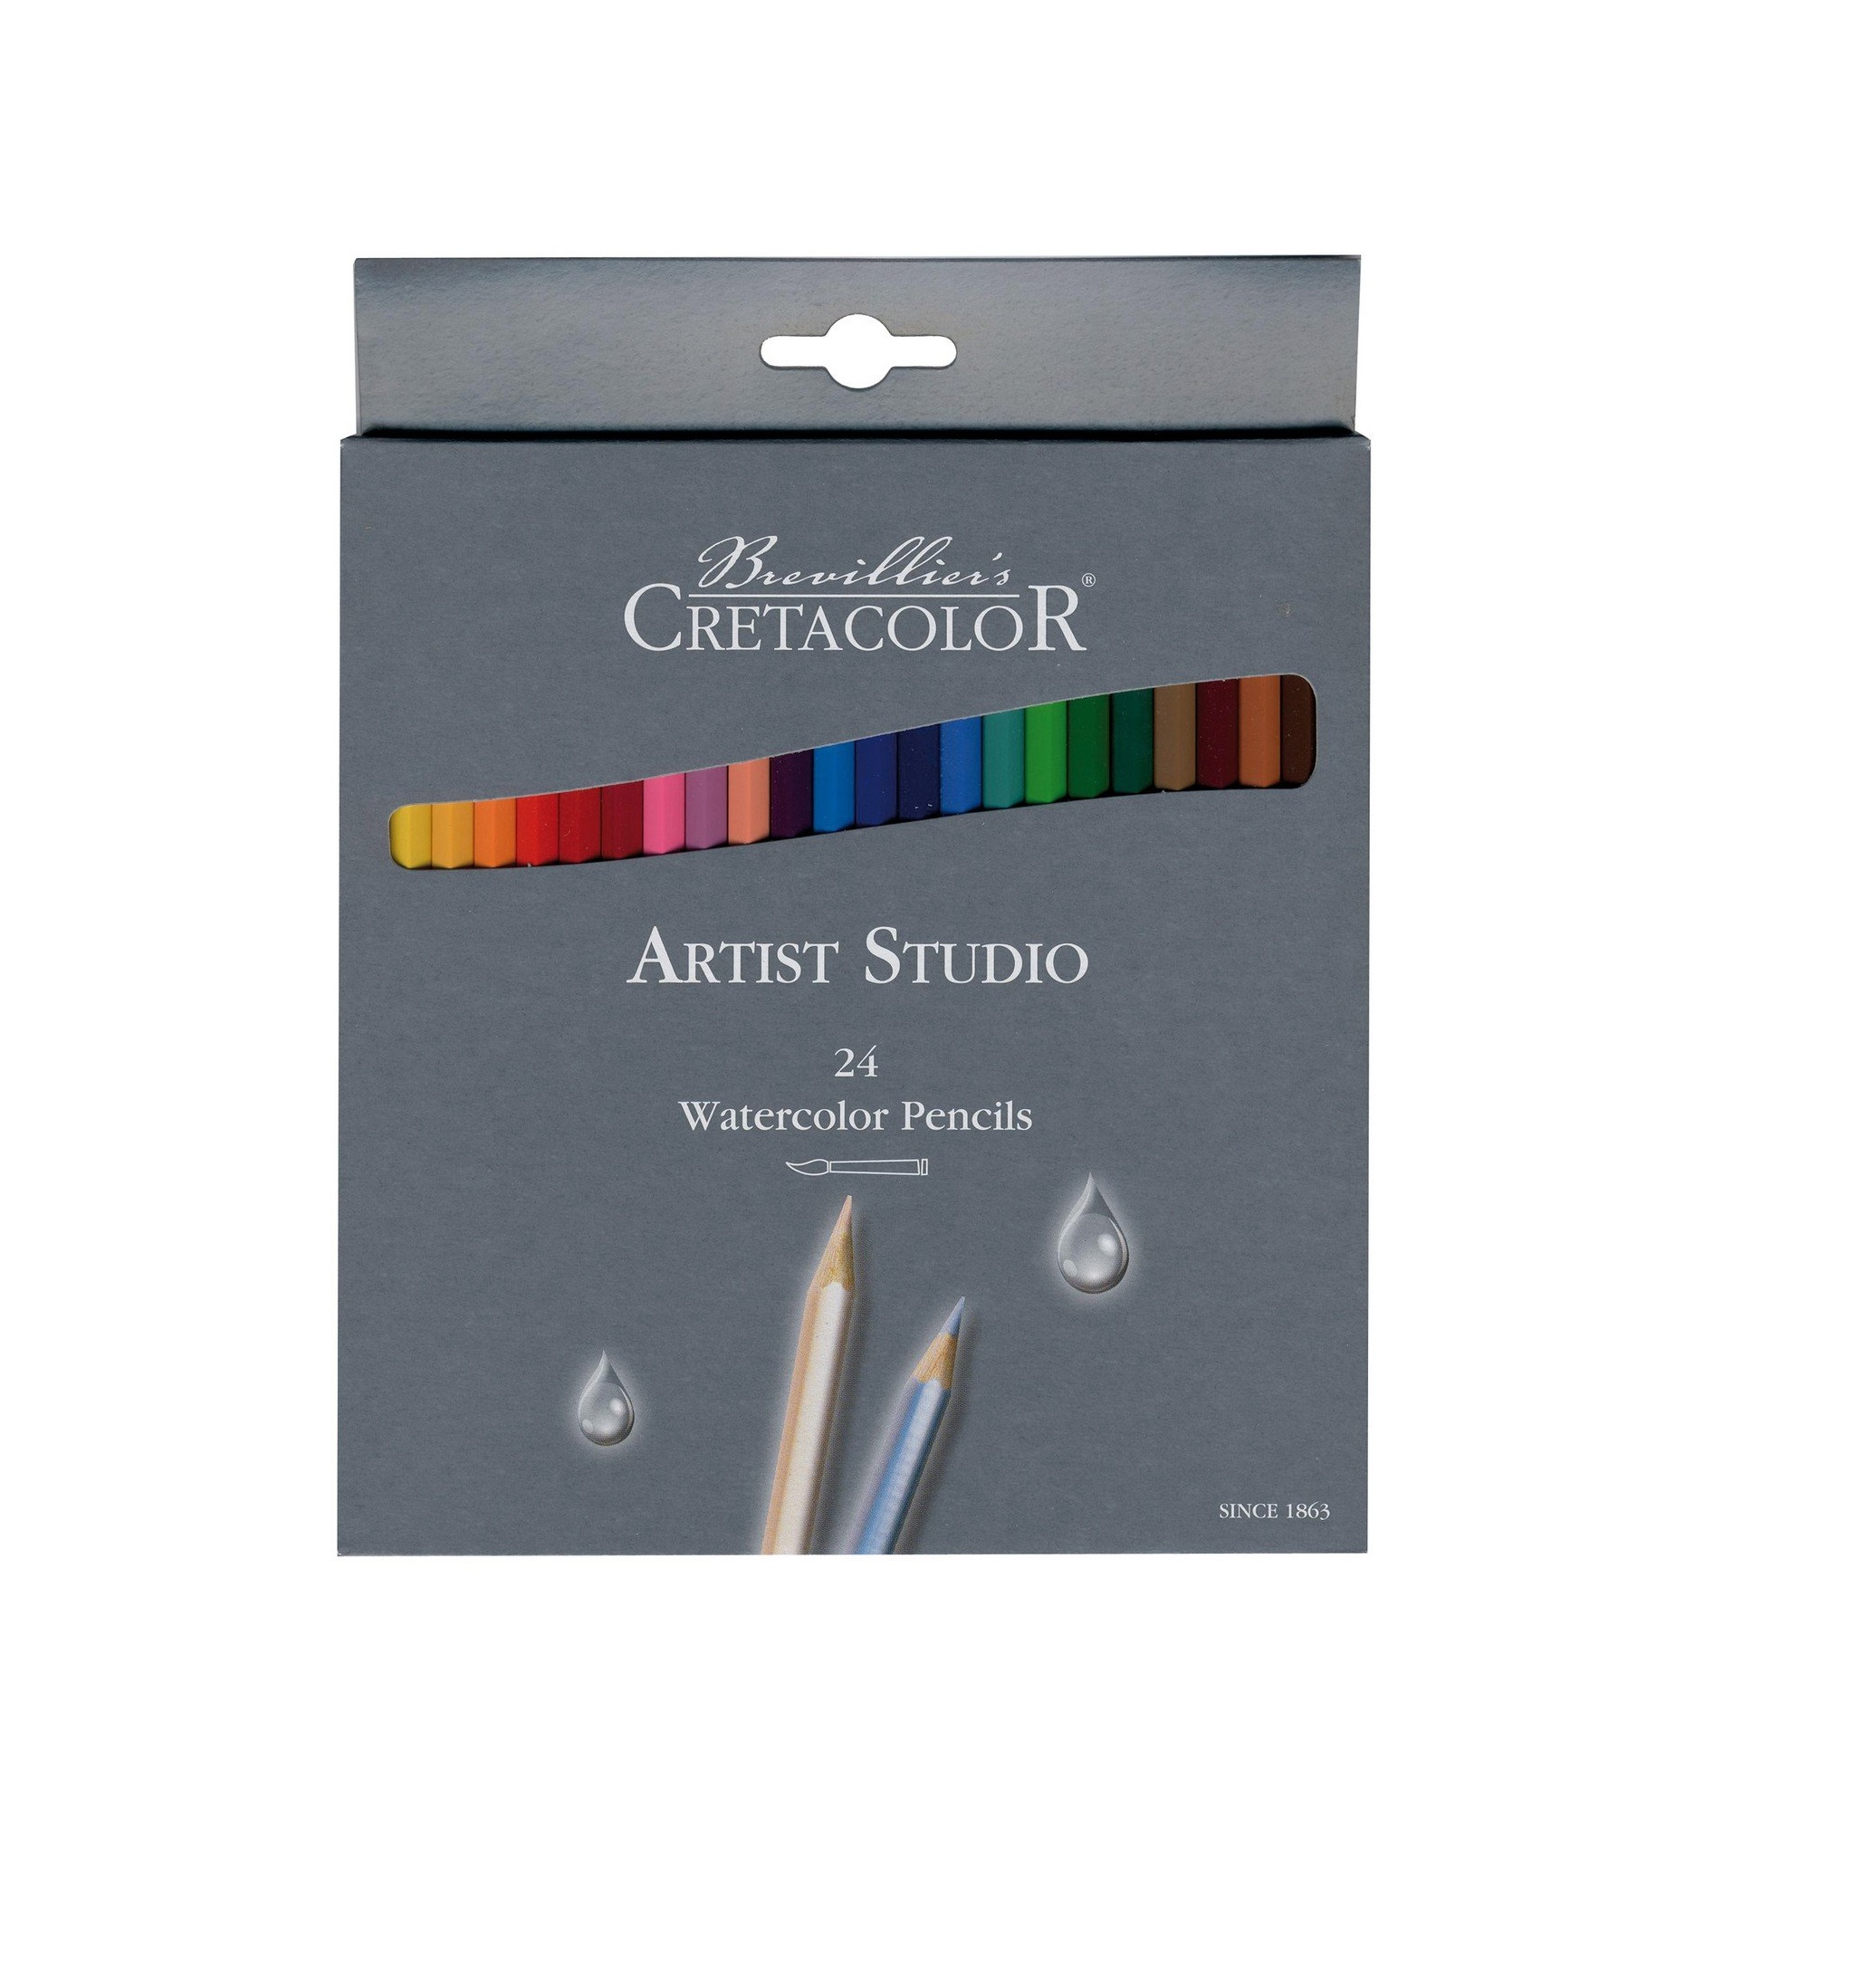 Cretacolor Artist Studio Watercolor Pencils - 24 Pencils